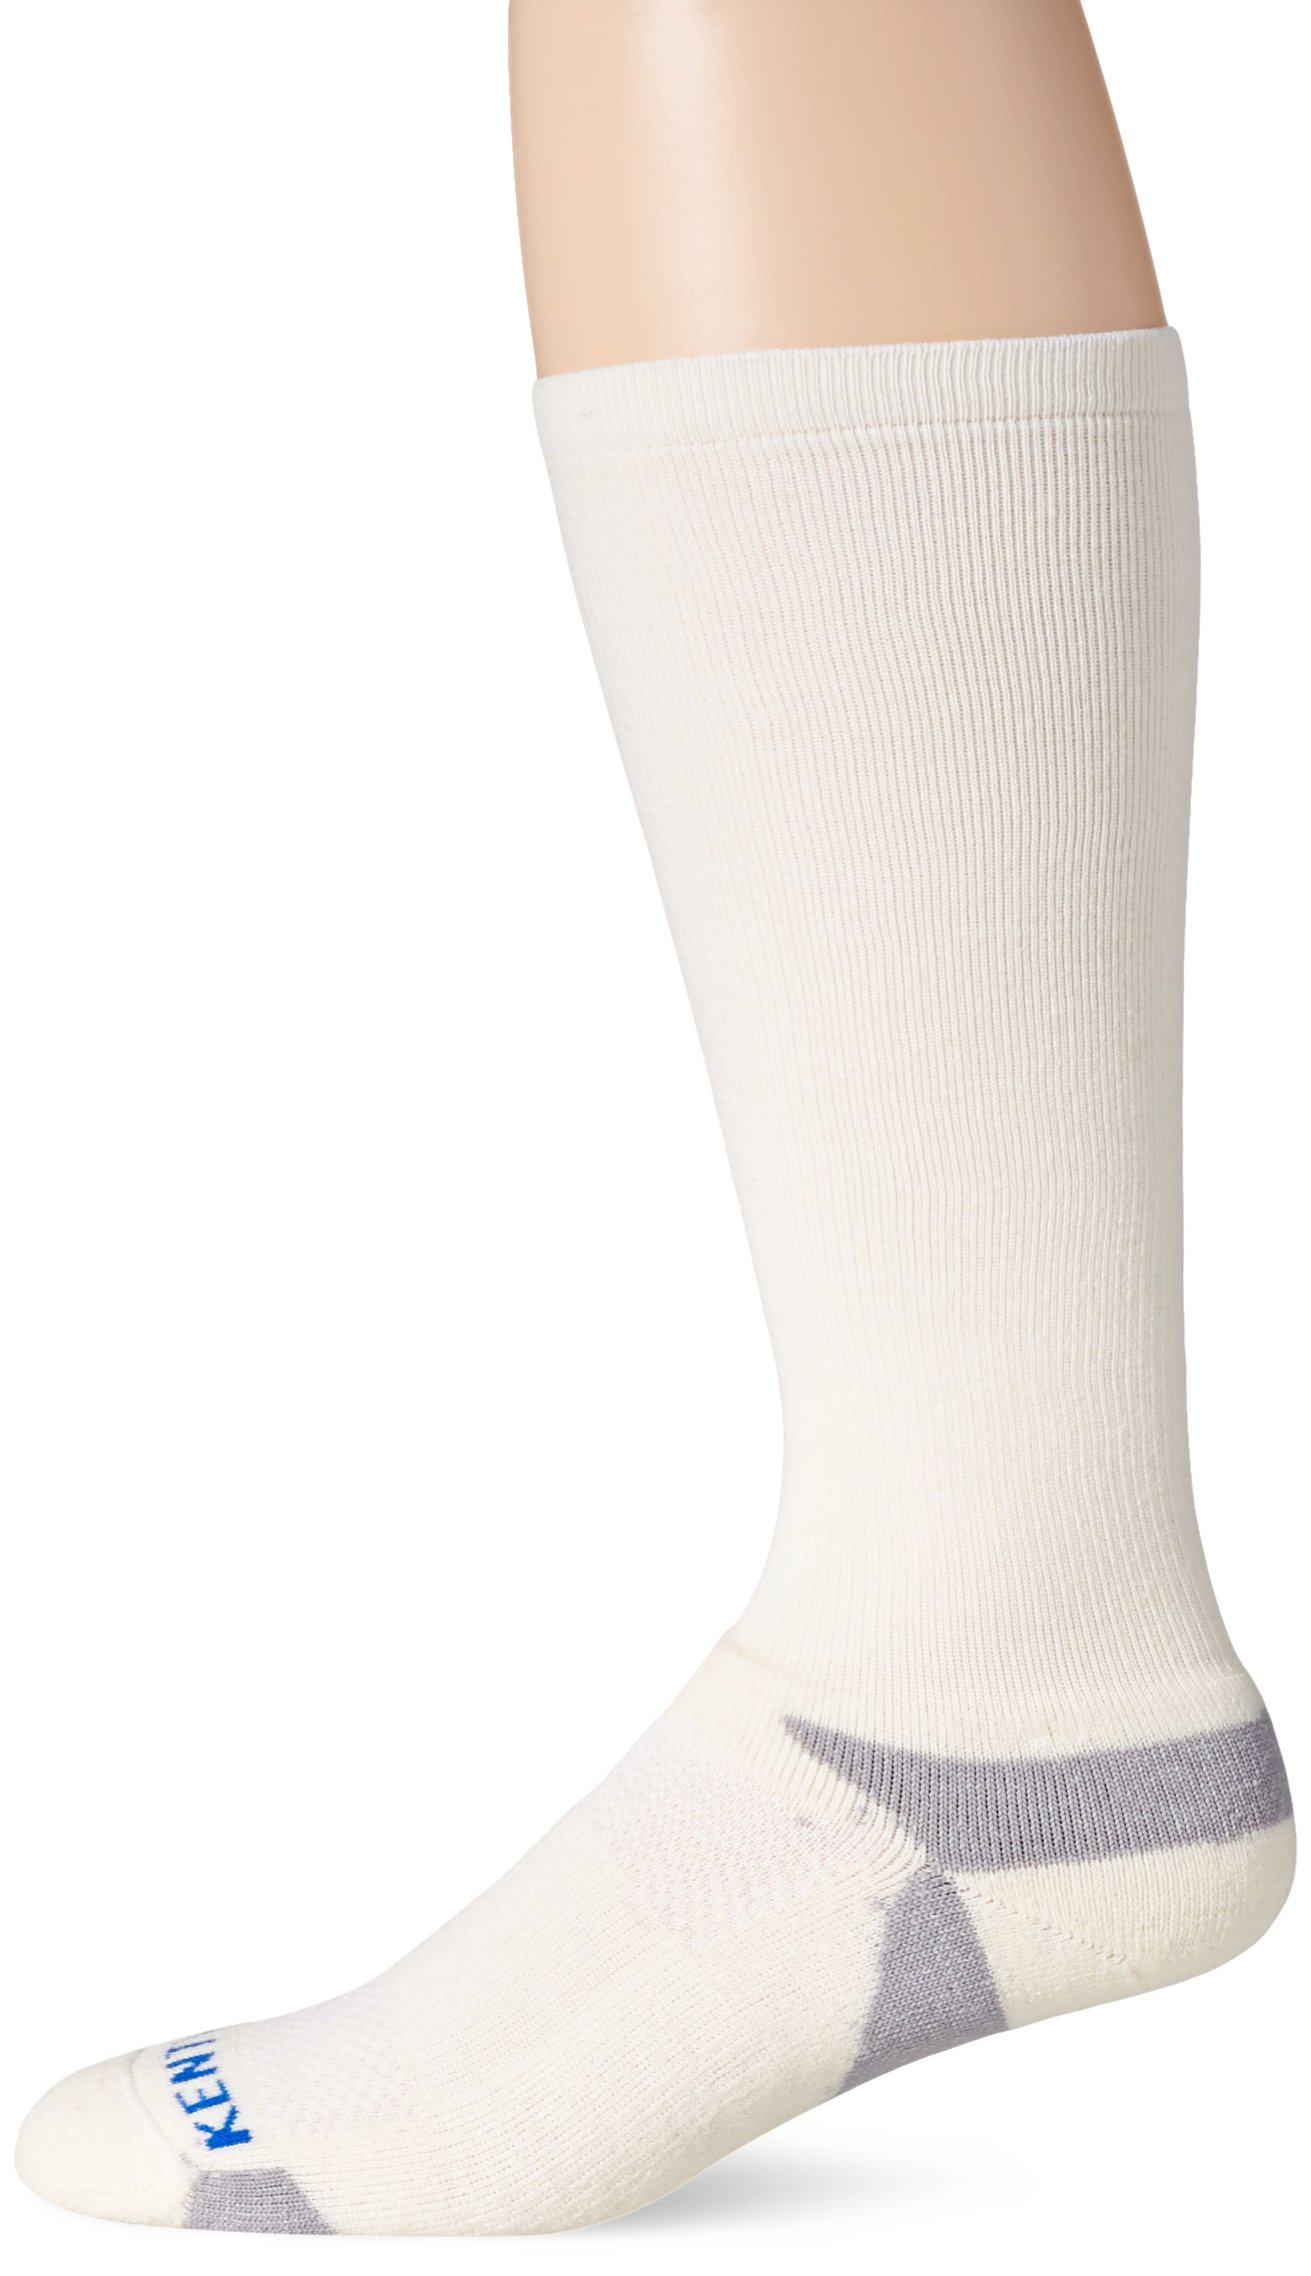 KENTWOOL Men's The Graduate Compression Sock (Natural, Medium) by KENTWOOL